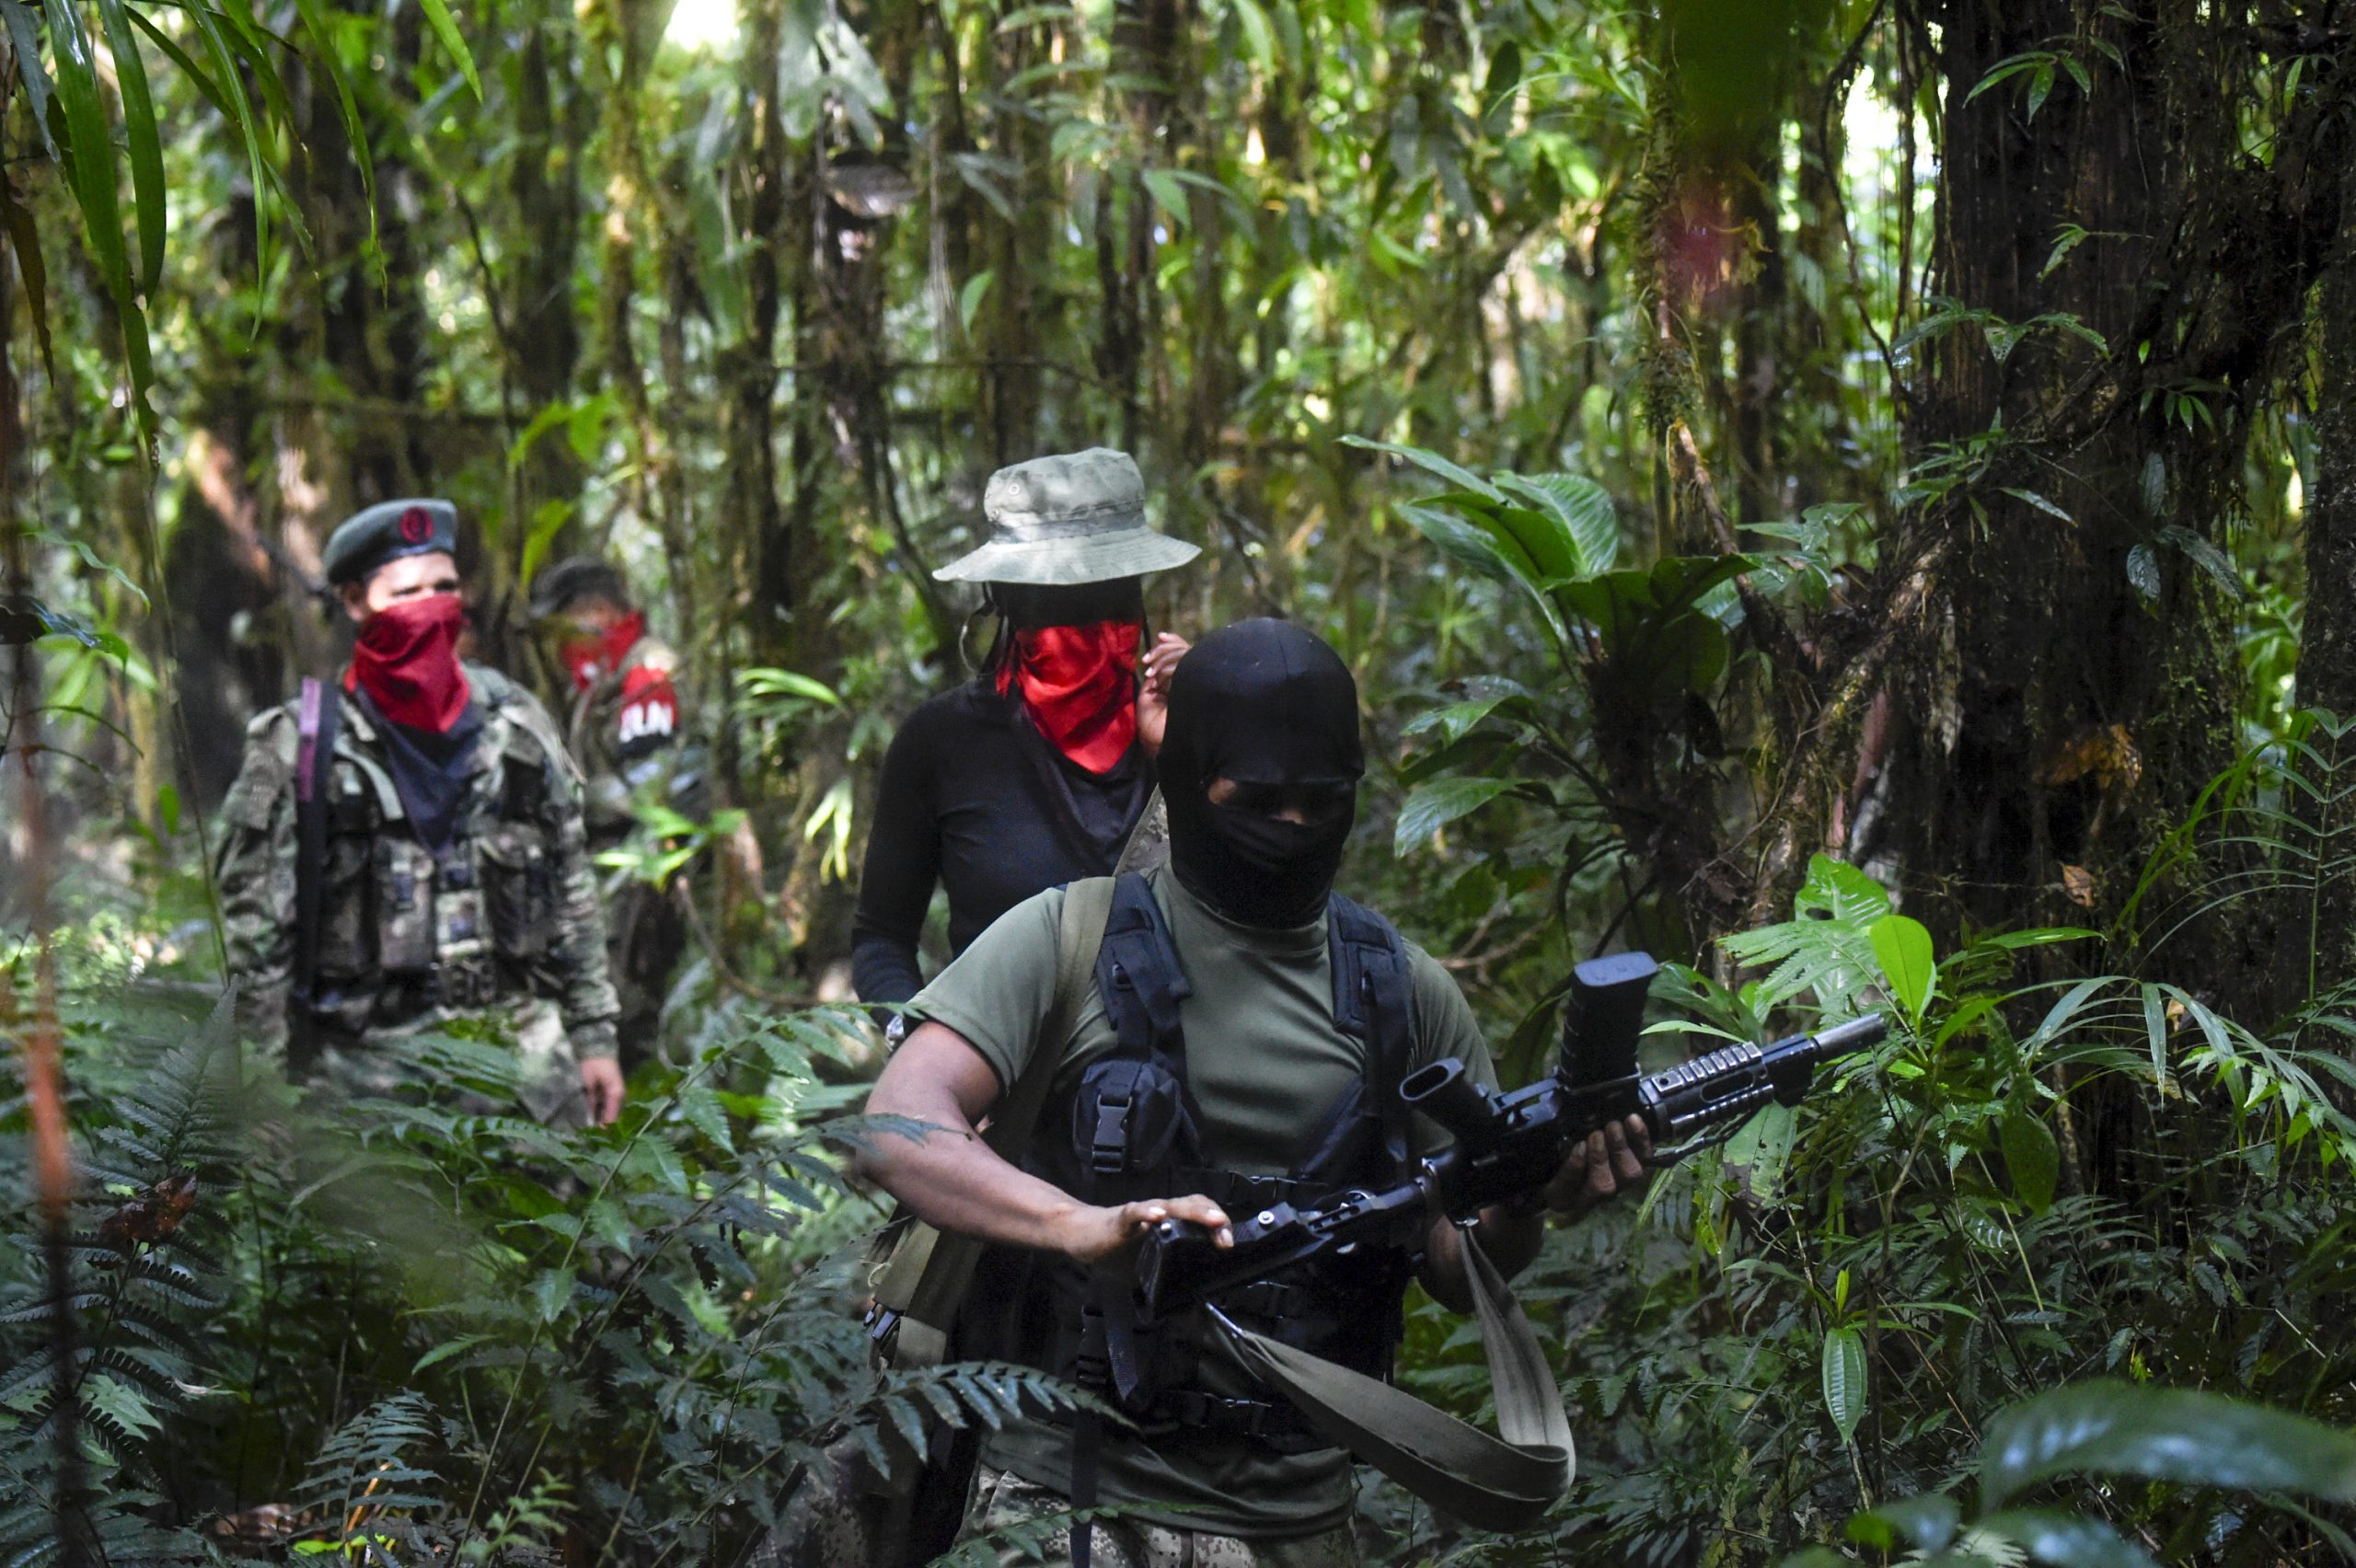 The Reinforcing Activities of the ELN in Colombia and Venezuela